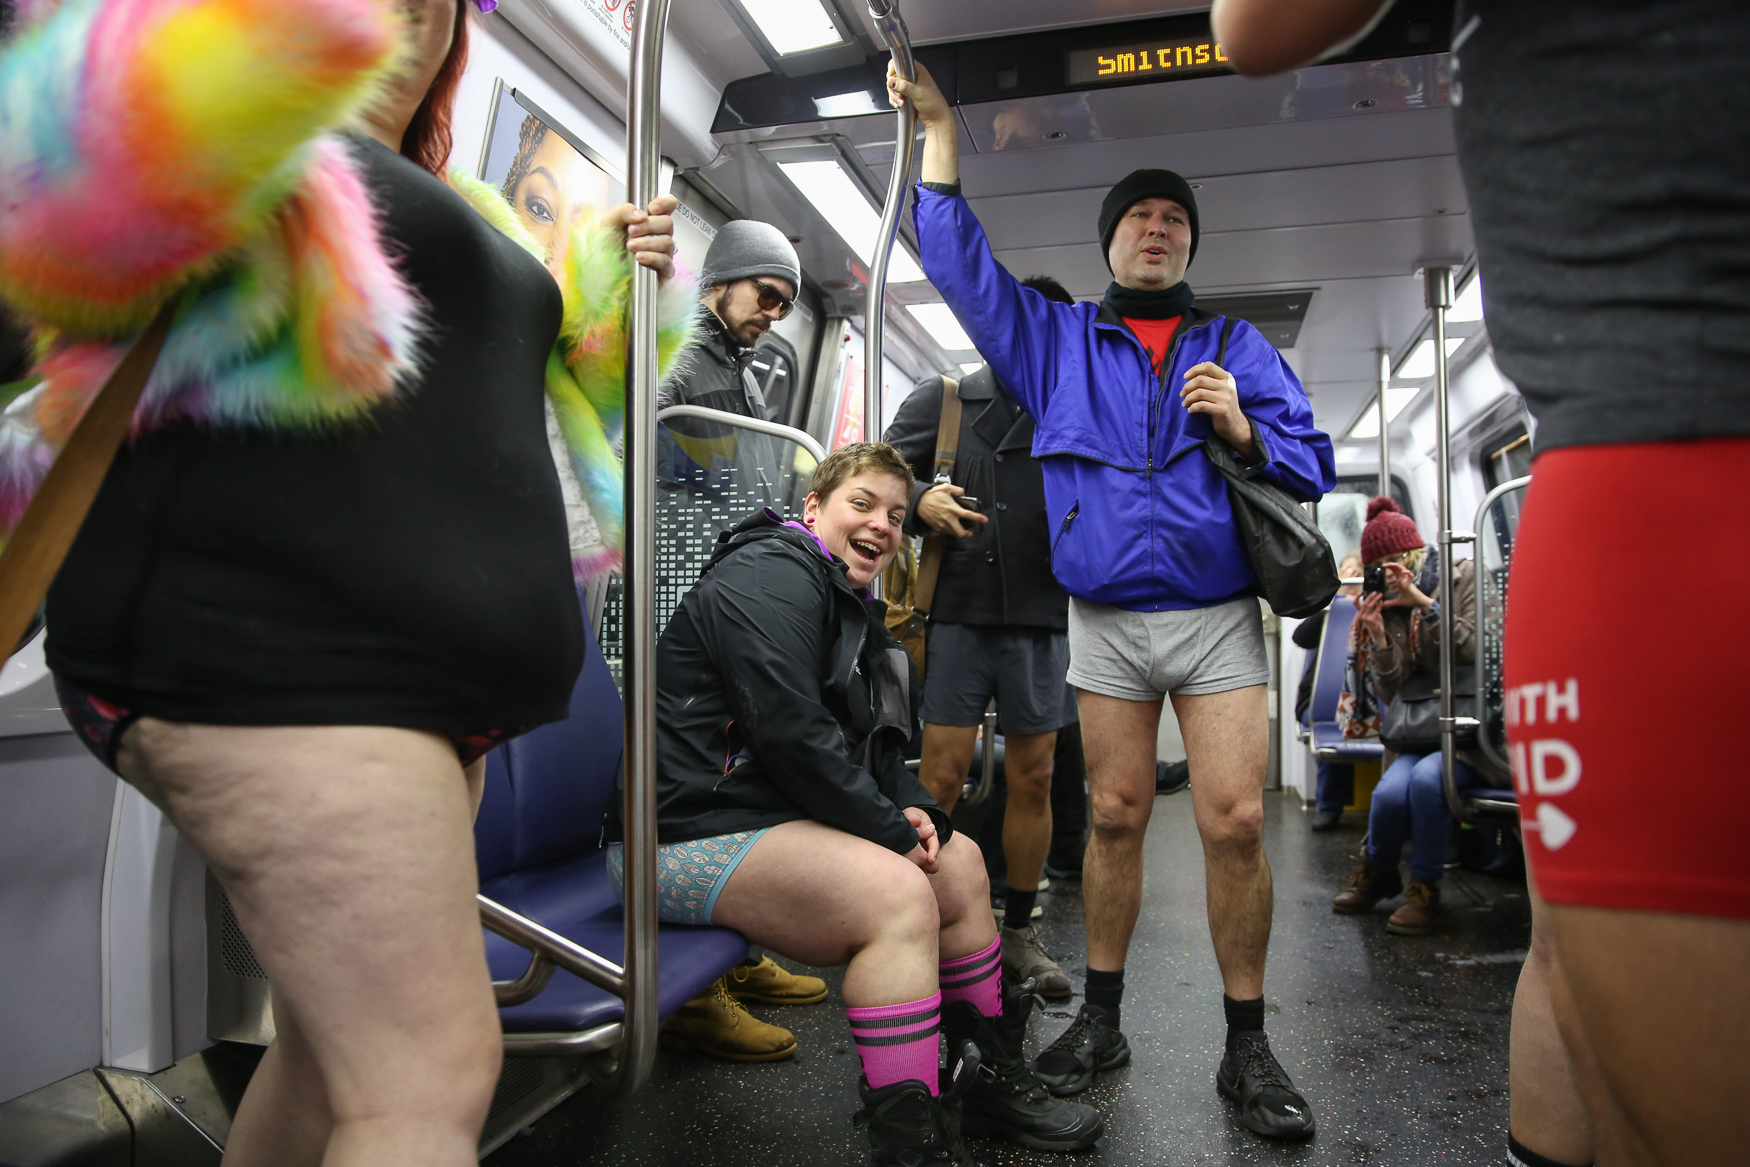 Over a dozen people braved the snow and stripped down for the annual 'No Pants Metro Ride' on January 13. The event is a spin-off of a similar event in New York, but D.C.'s is smaller. The riders boarded at L'Enfant Metro Station and ventured all over town before settling at The Big Hunt in Dupont for their pants option after-party. (Amanda Andrade-Rhoades/DC Refined)